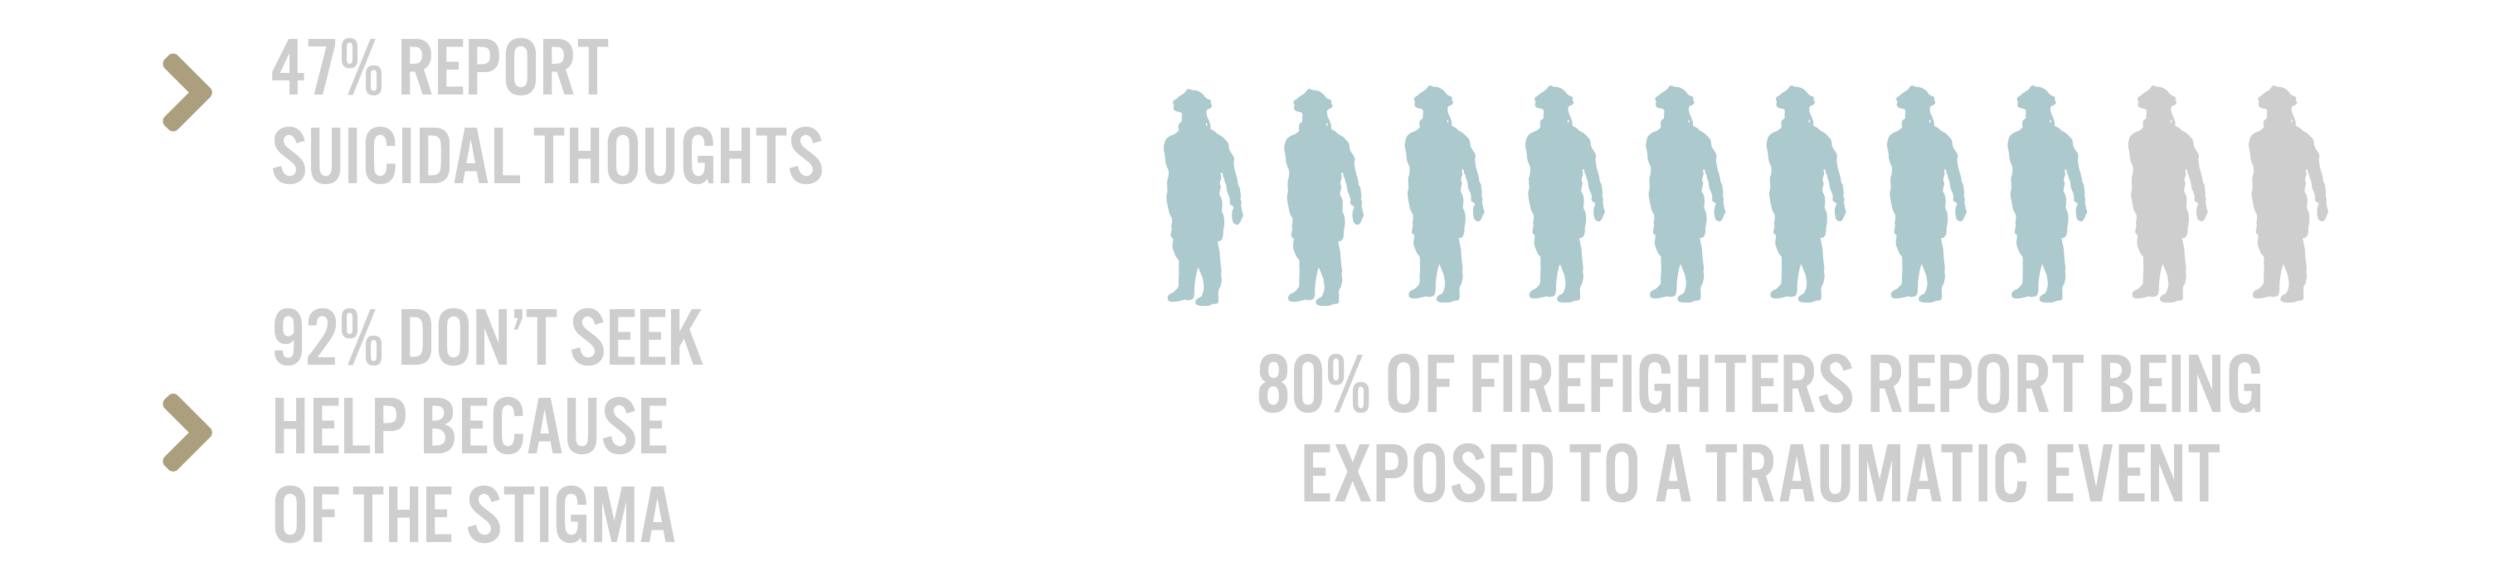 PHH_Firefighter Facts.png